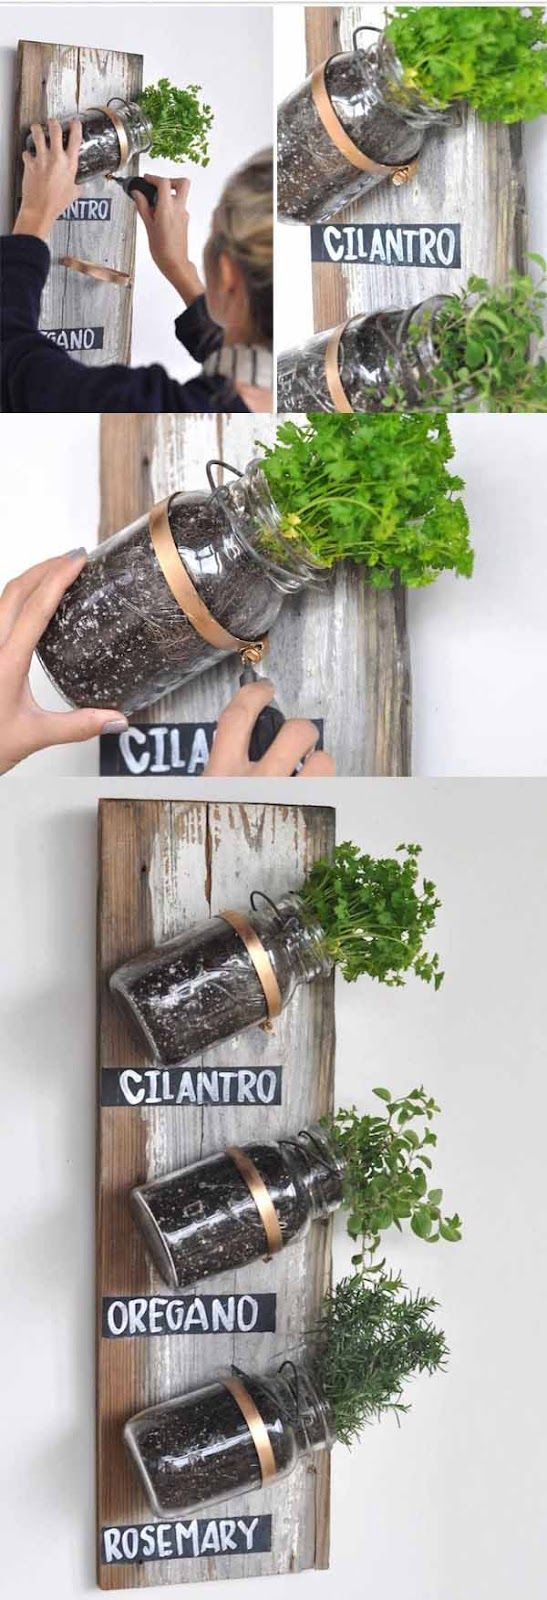 MASON JAR HERB GARDEN - Attractive & clever way to plant fresh herbs without them taking over your entire yard!